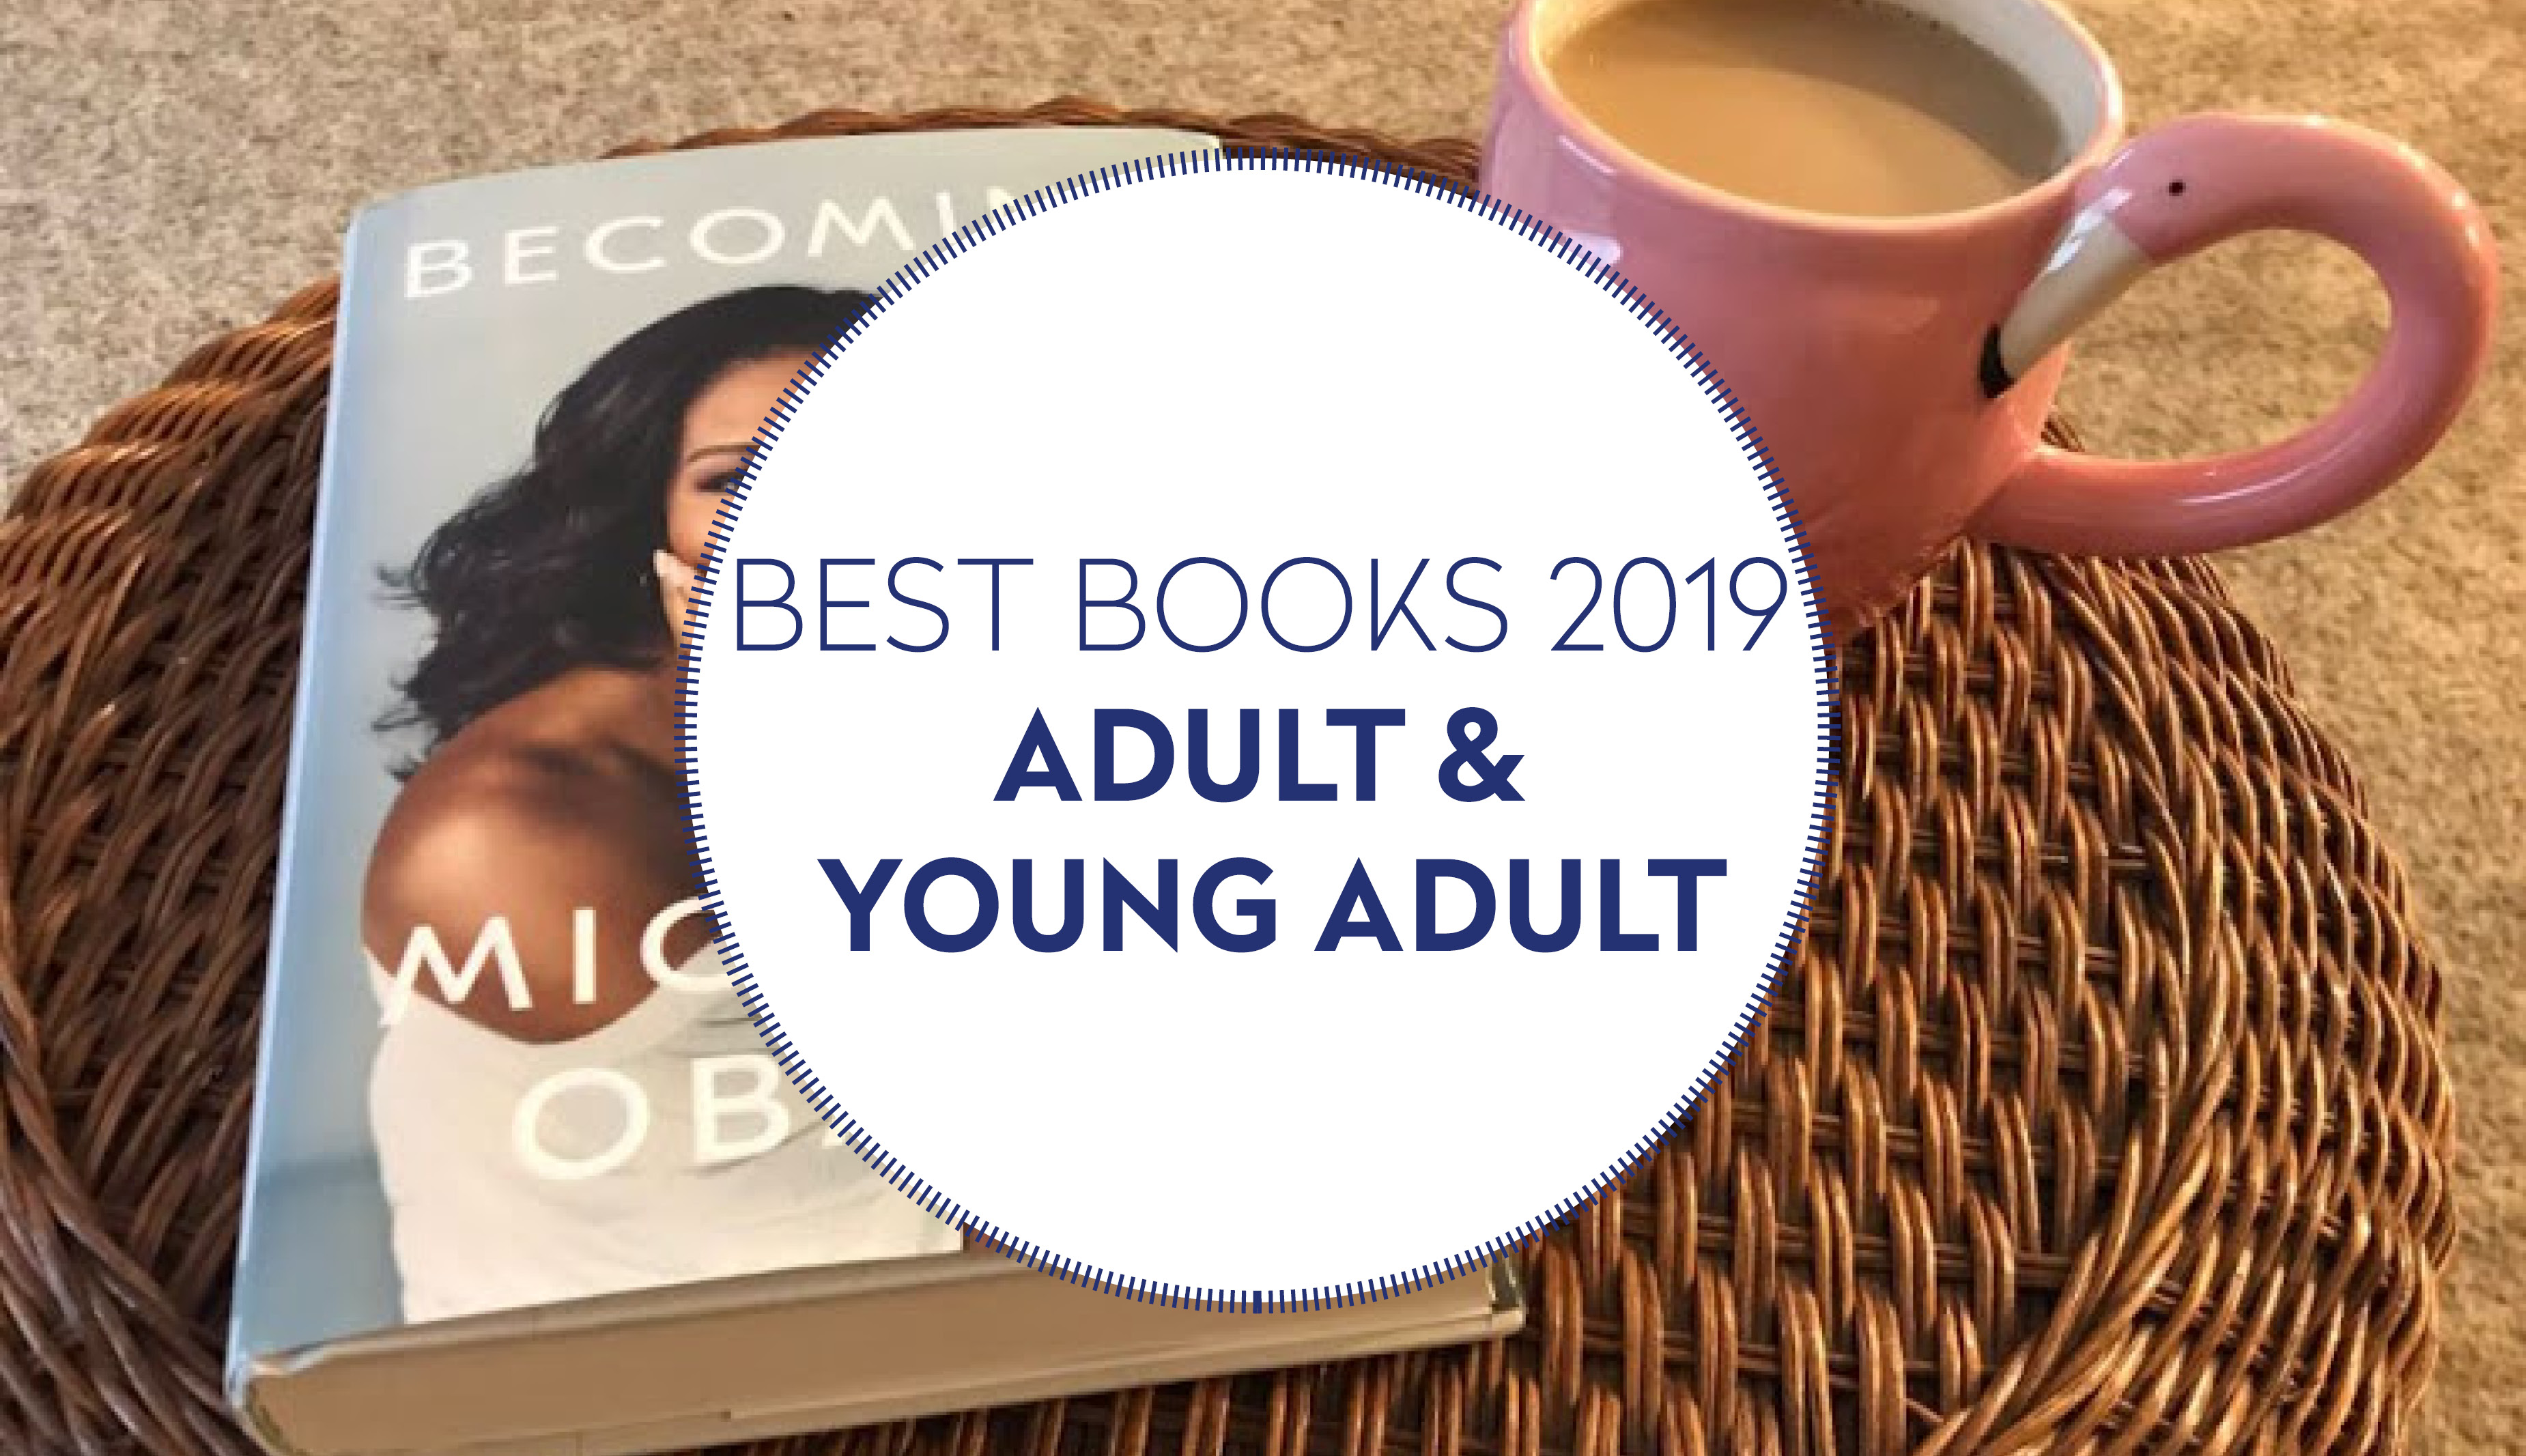 BEST Books 2019 Adult